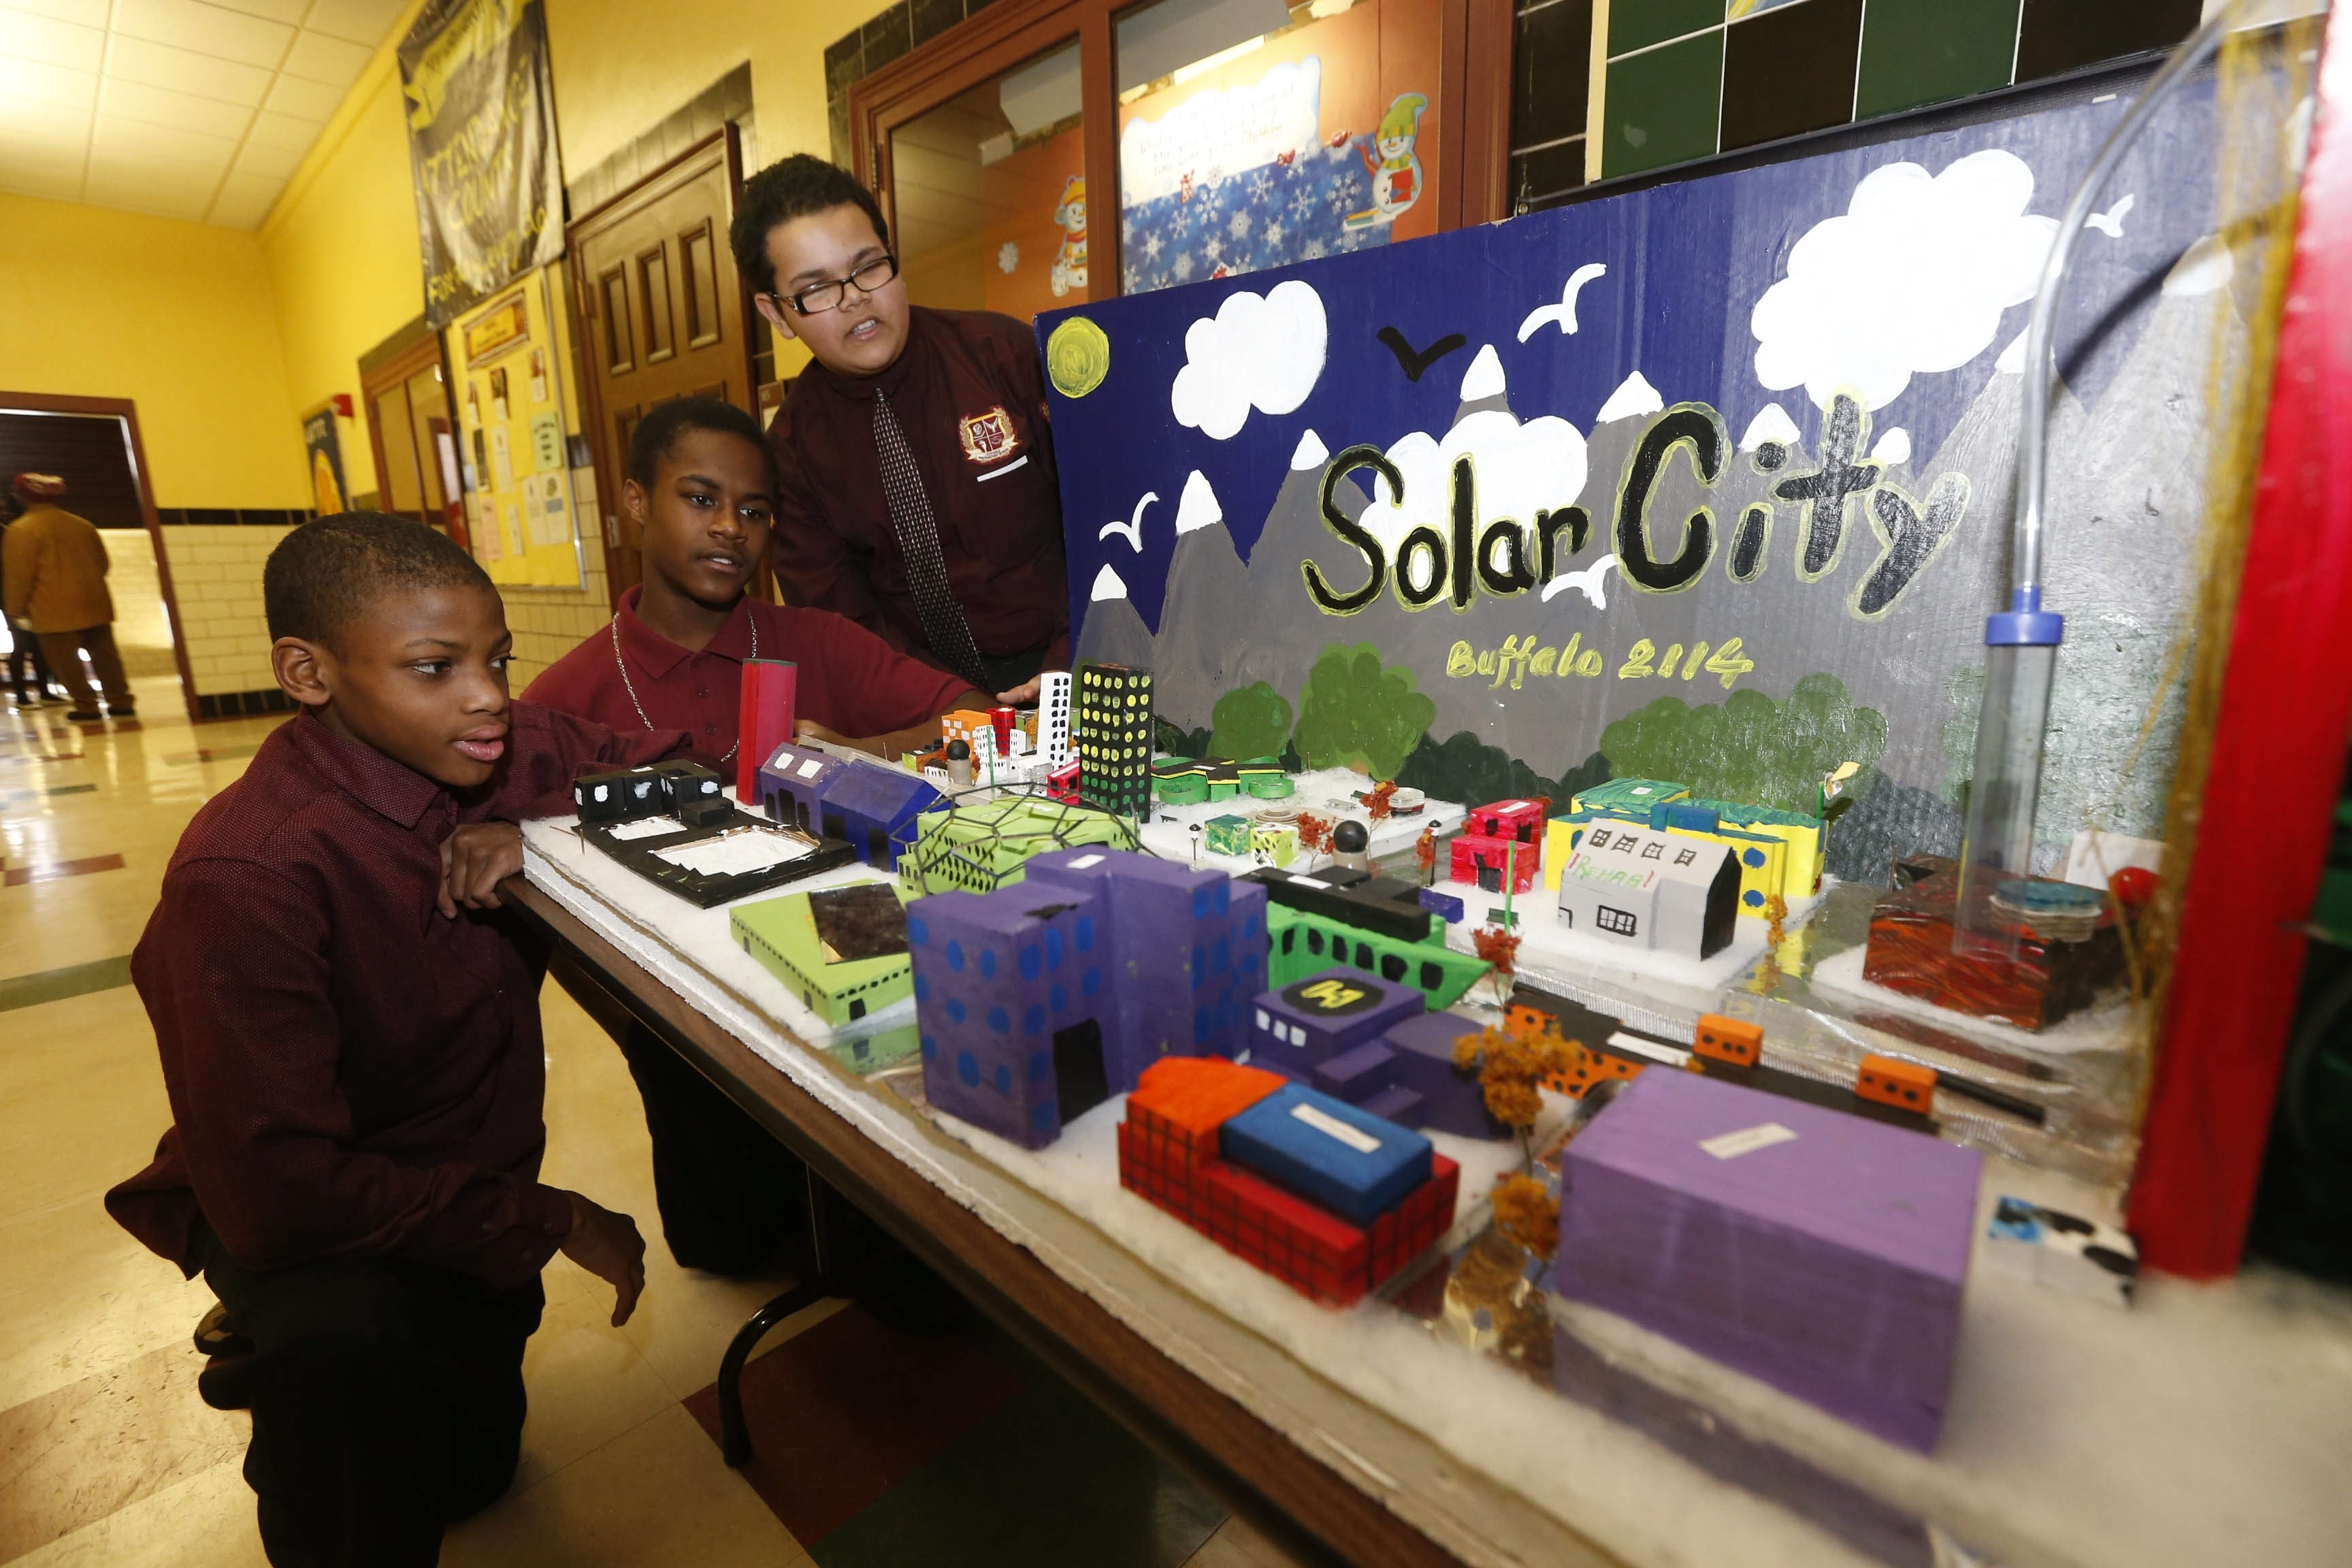 From left, Antonio Haley, 13, Steven Small, 13, and Romeo Anthony, 14, give a tour of their Solar City Buffalo project at Marva J. Daniel Futures Preparatory School at 295 Carlton St. on Thursday. The school was one of 11 chosen to pilot a new curriculum.